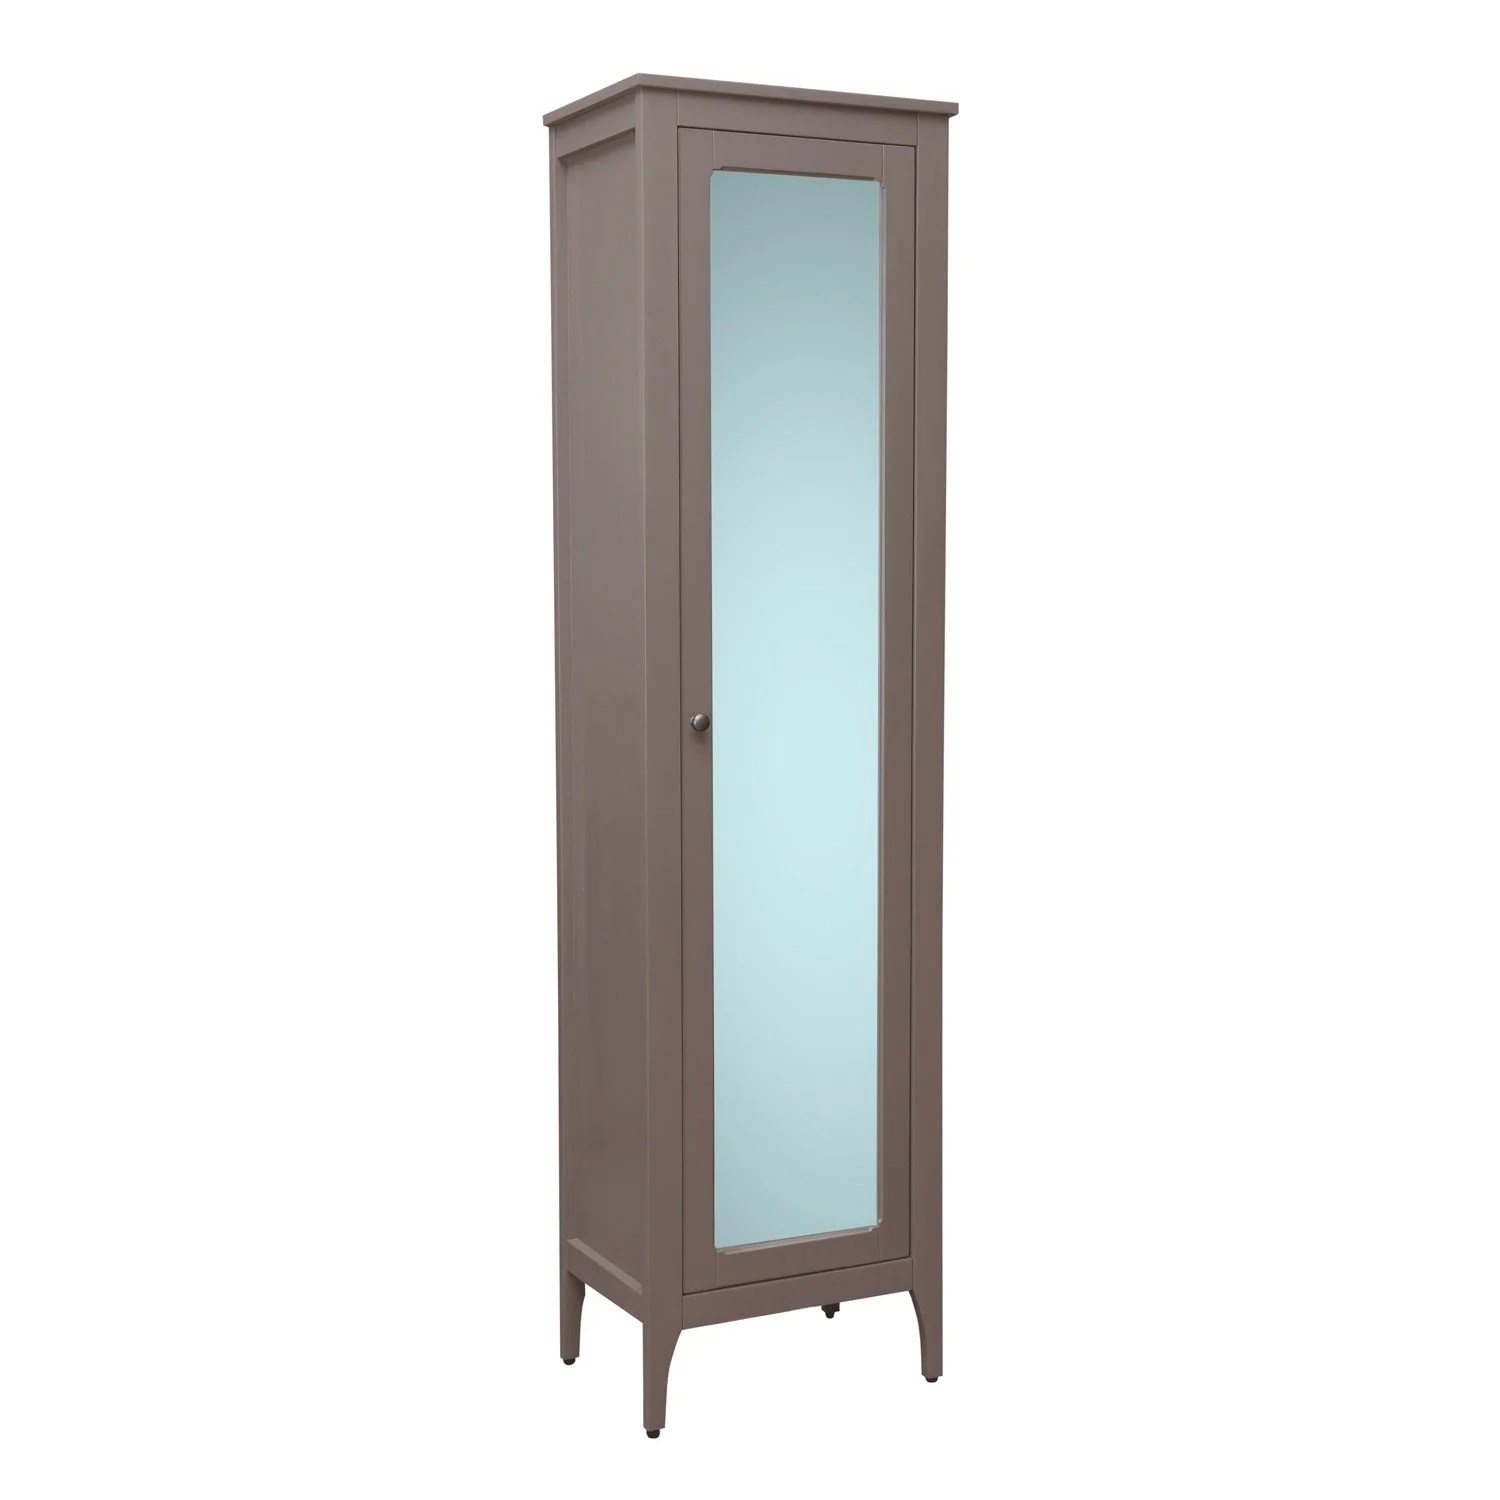 Colonne En Platre Leroy Merlin Colonne L 48 X H 180 X P 34 Cm Ashley